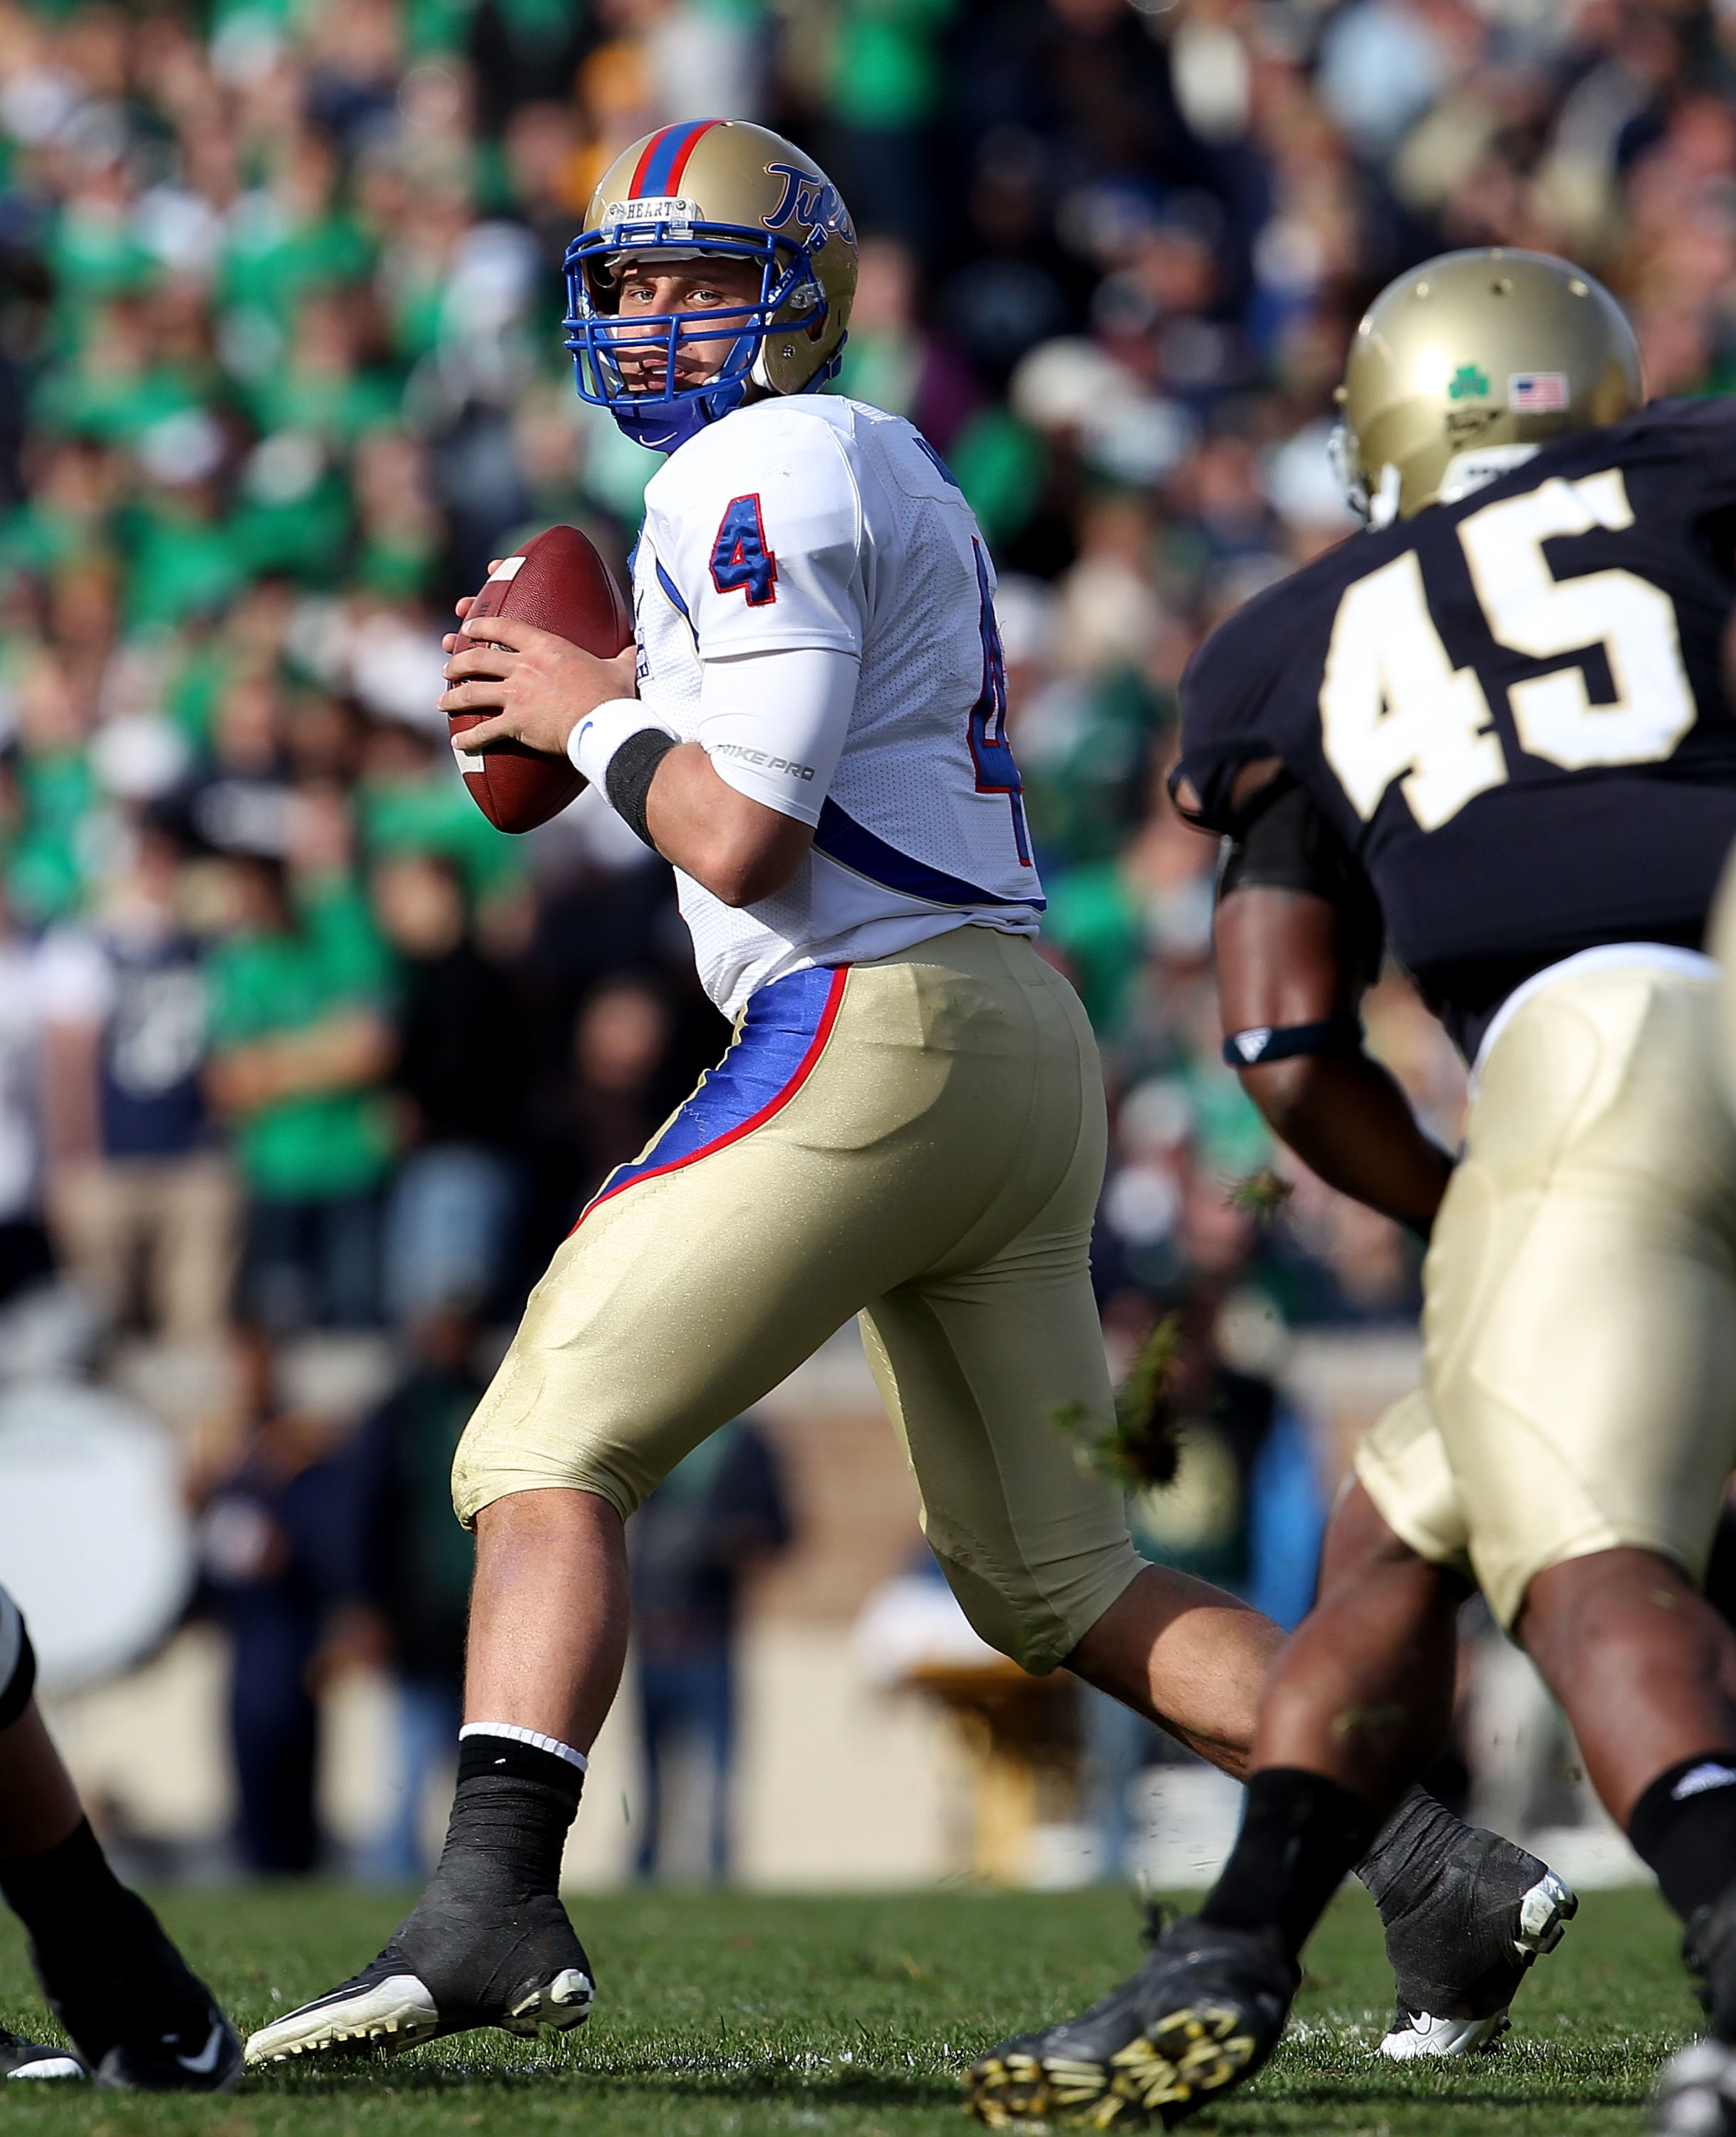 SOUTH BEND, IN - OCTOBER 30: G.J. Kinne #4 of the Tulsa Golden Hurricane looks to pass as Darius Flemming #45 of the Notre Dame Fighting Irish rushes at Notre Dame Stadium on October 30, 2010 in South Bend, Indiana. Tulsa defeated Notre Dame 28-27. (Photo